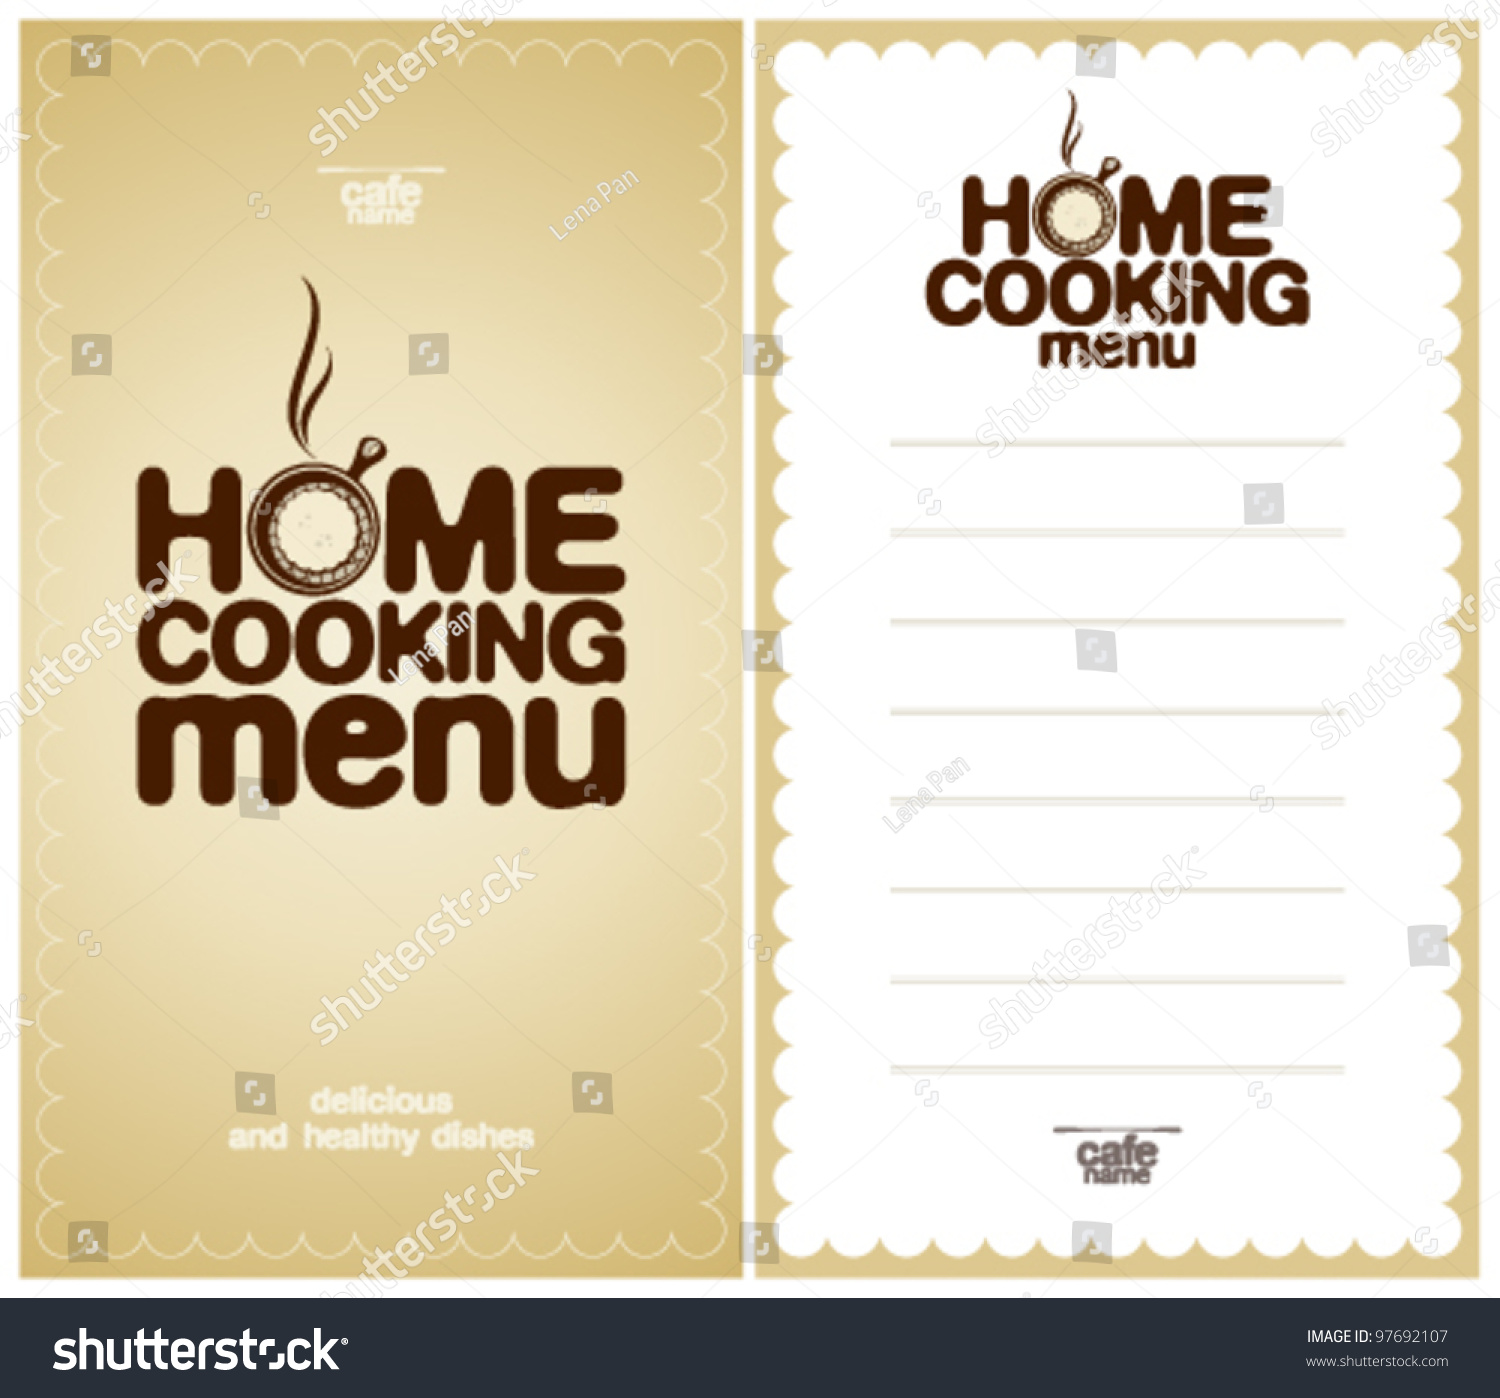 home cooking menu design template form stock vector royalty free